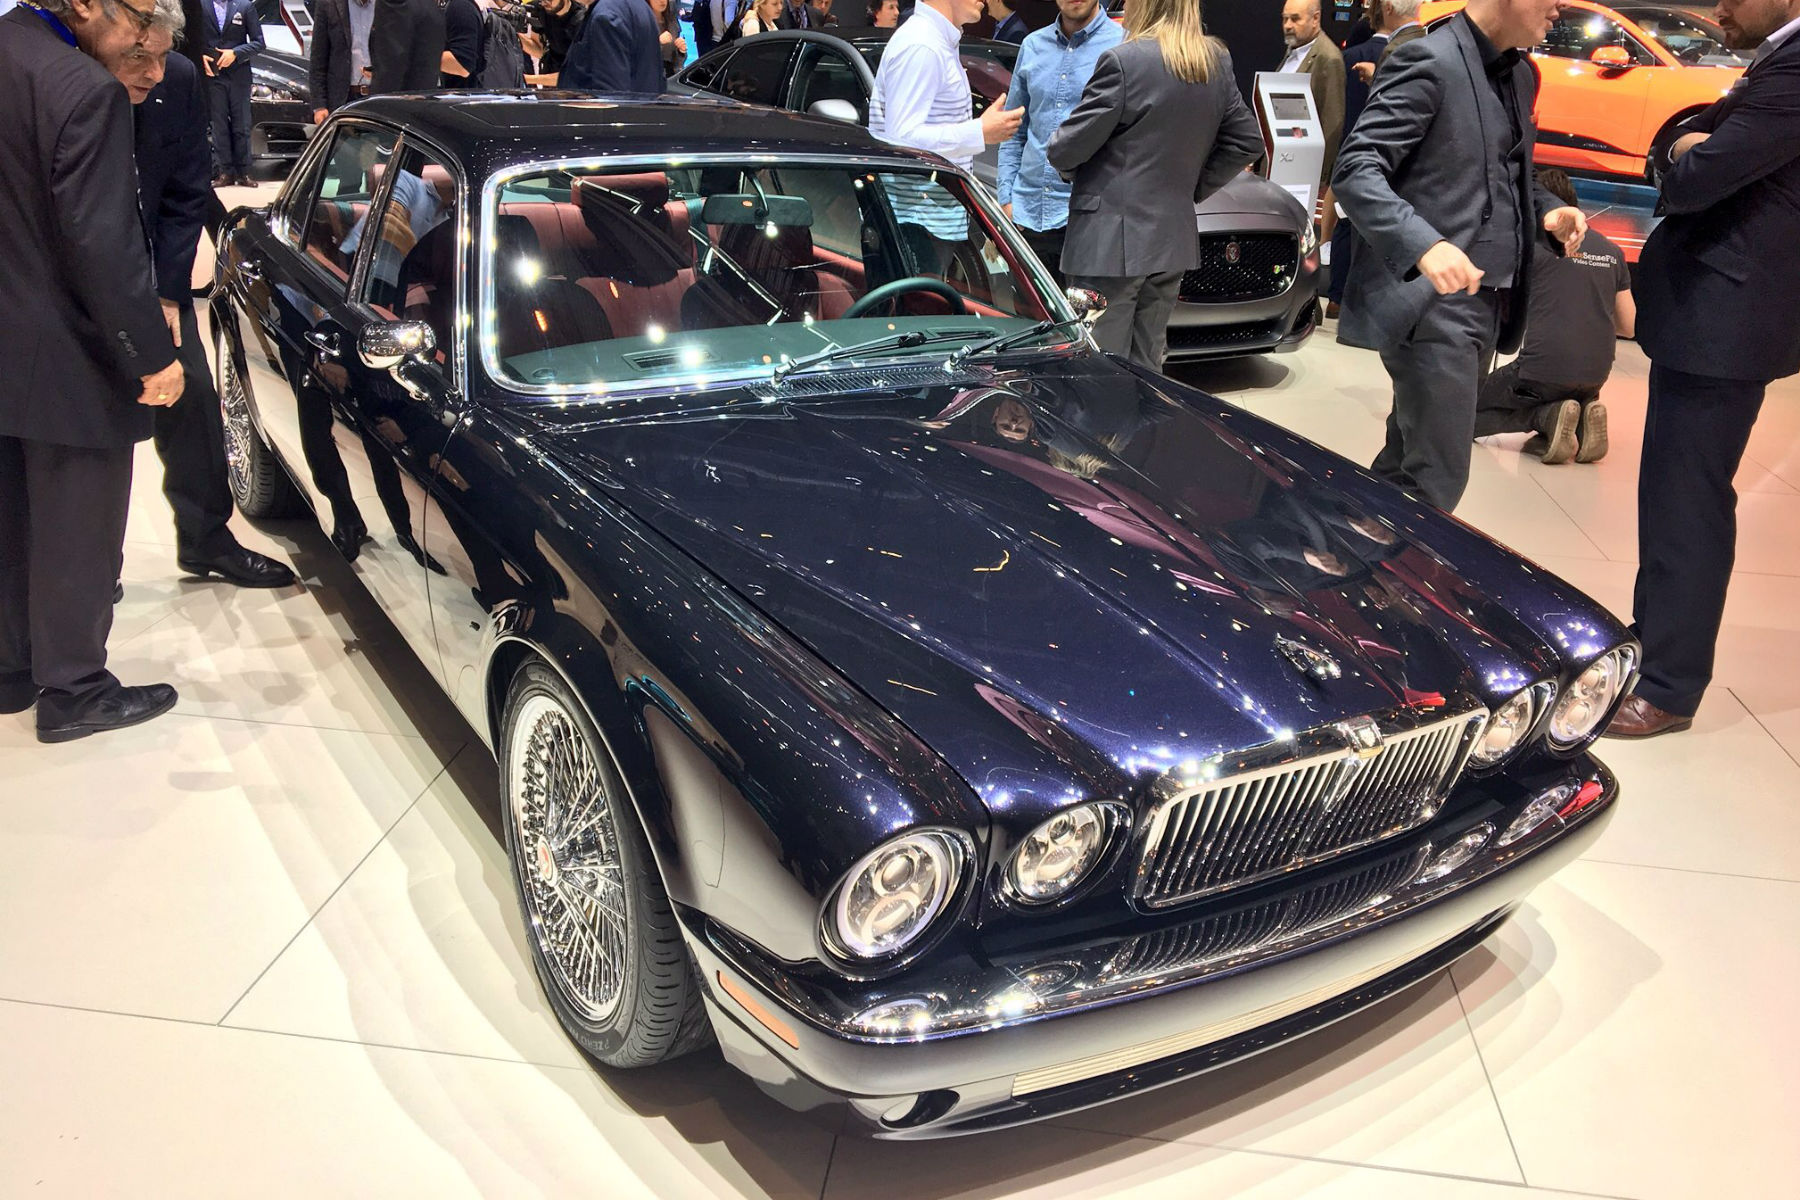 Iron Maiden Drummer S Jaguar Xj6 Is The Coolest Thing At